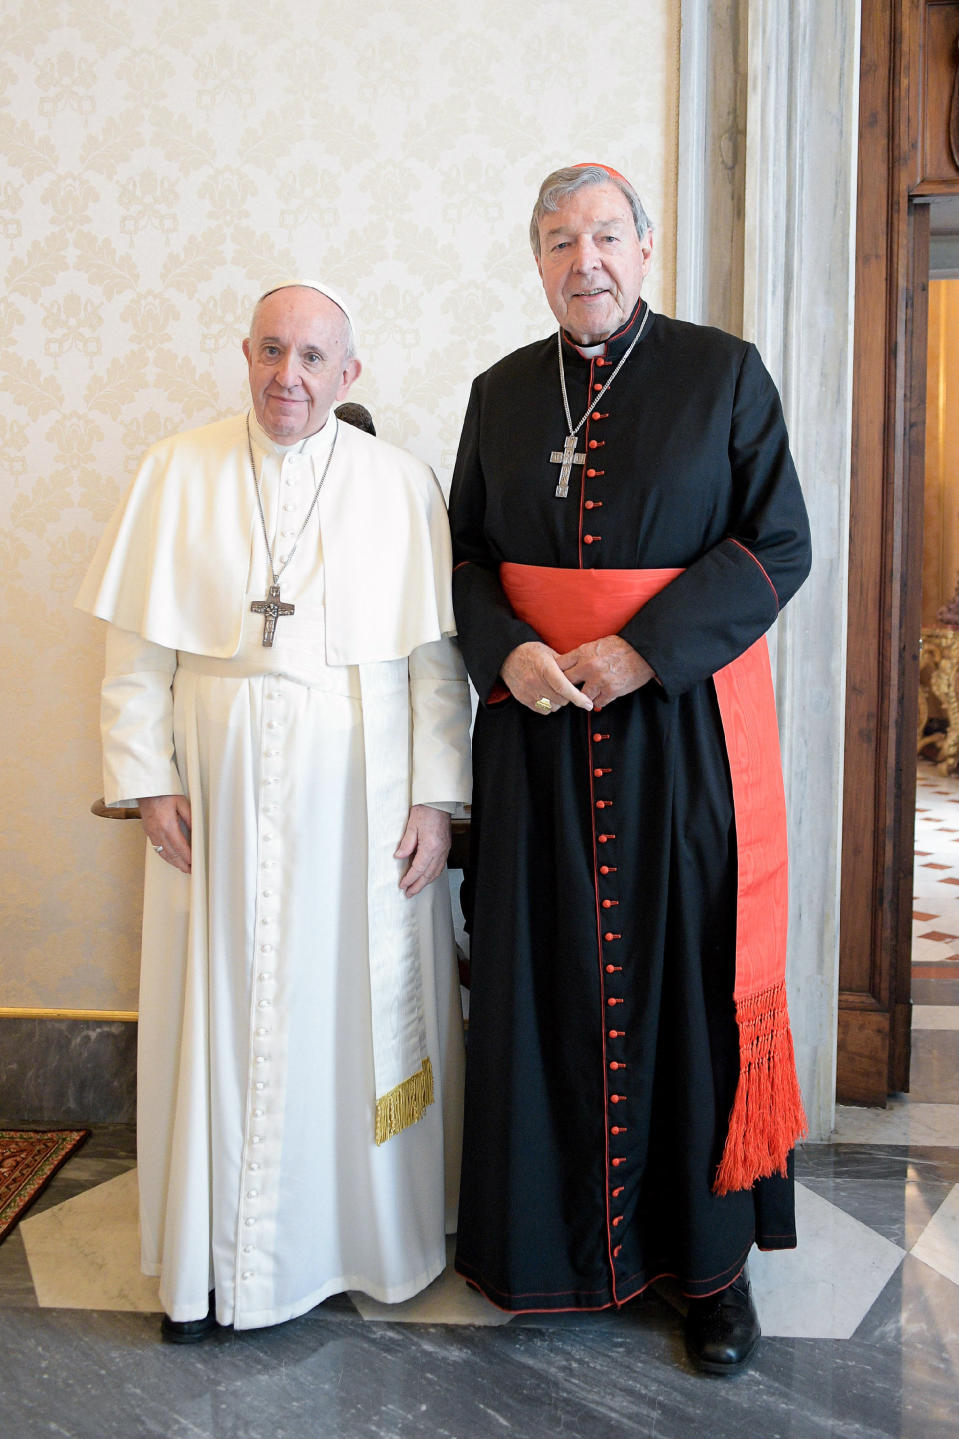 Pope Francis, left, stands next to Cardinal George Pell on the occasion of their private meeting at the Vatican, Monday, Oct. 12, 2020. The Pope warmly welcomed Cardinal for a private audience in the Apostolic Palace after the cardinal's sex abuse conviction and acquittal in Australia. (Vatican News via AP)